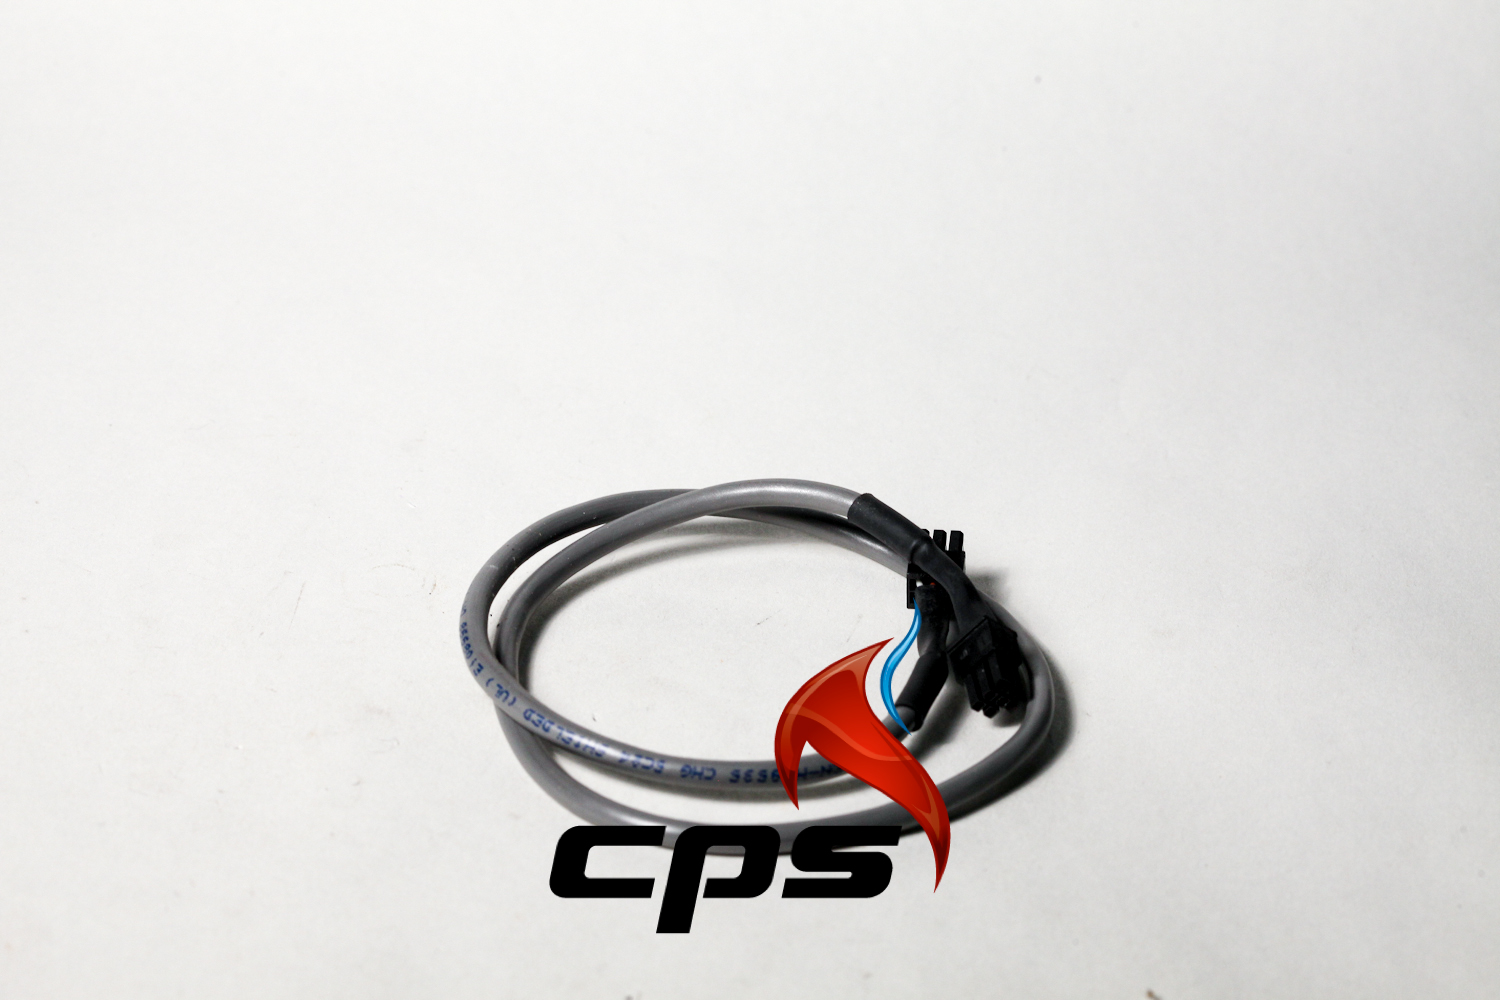 00203-0100 - Roundup Food Equipment - CPS